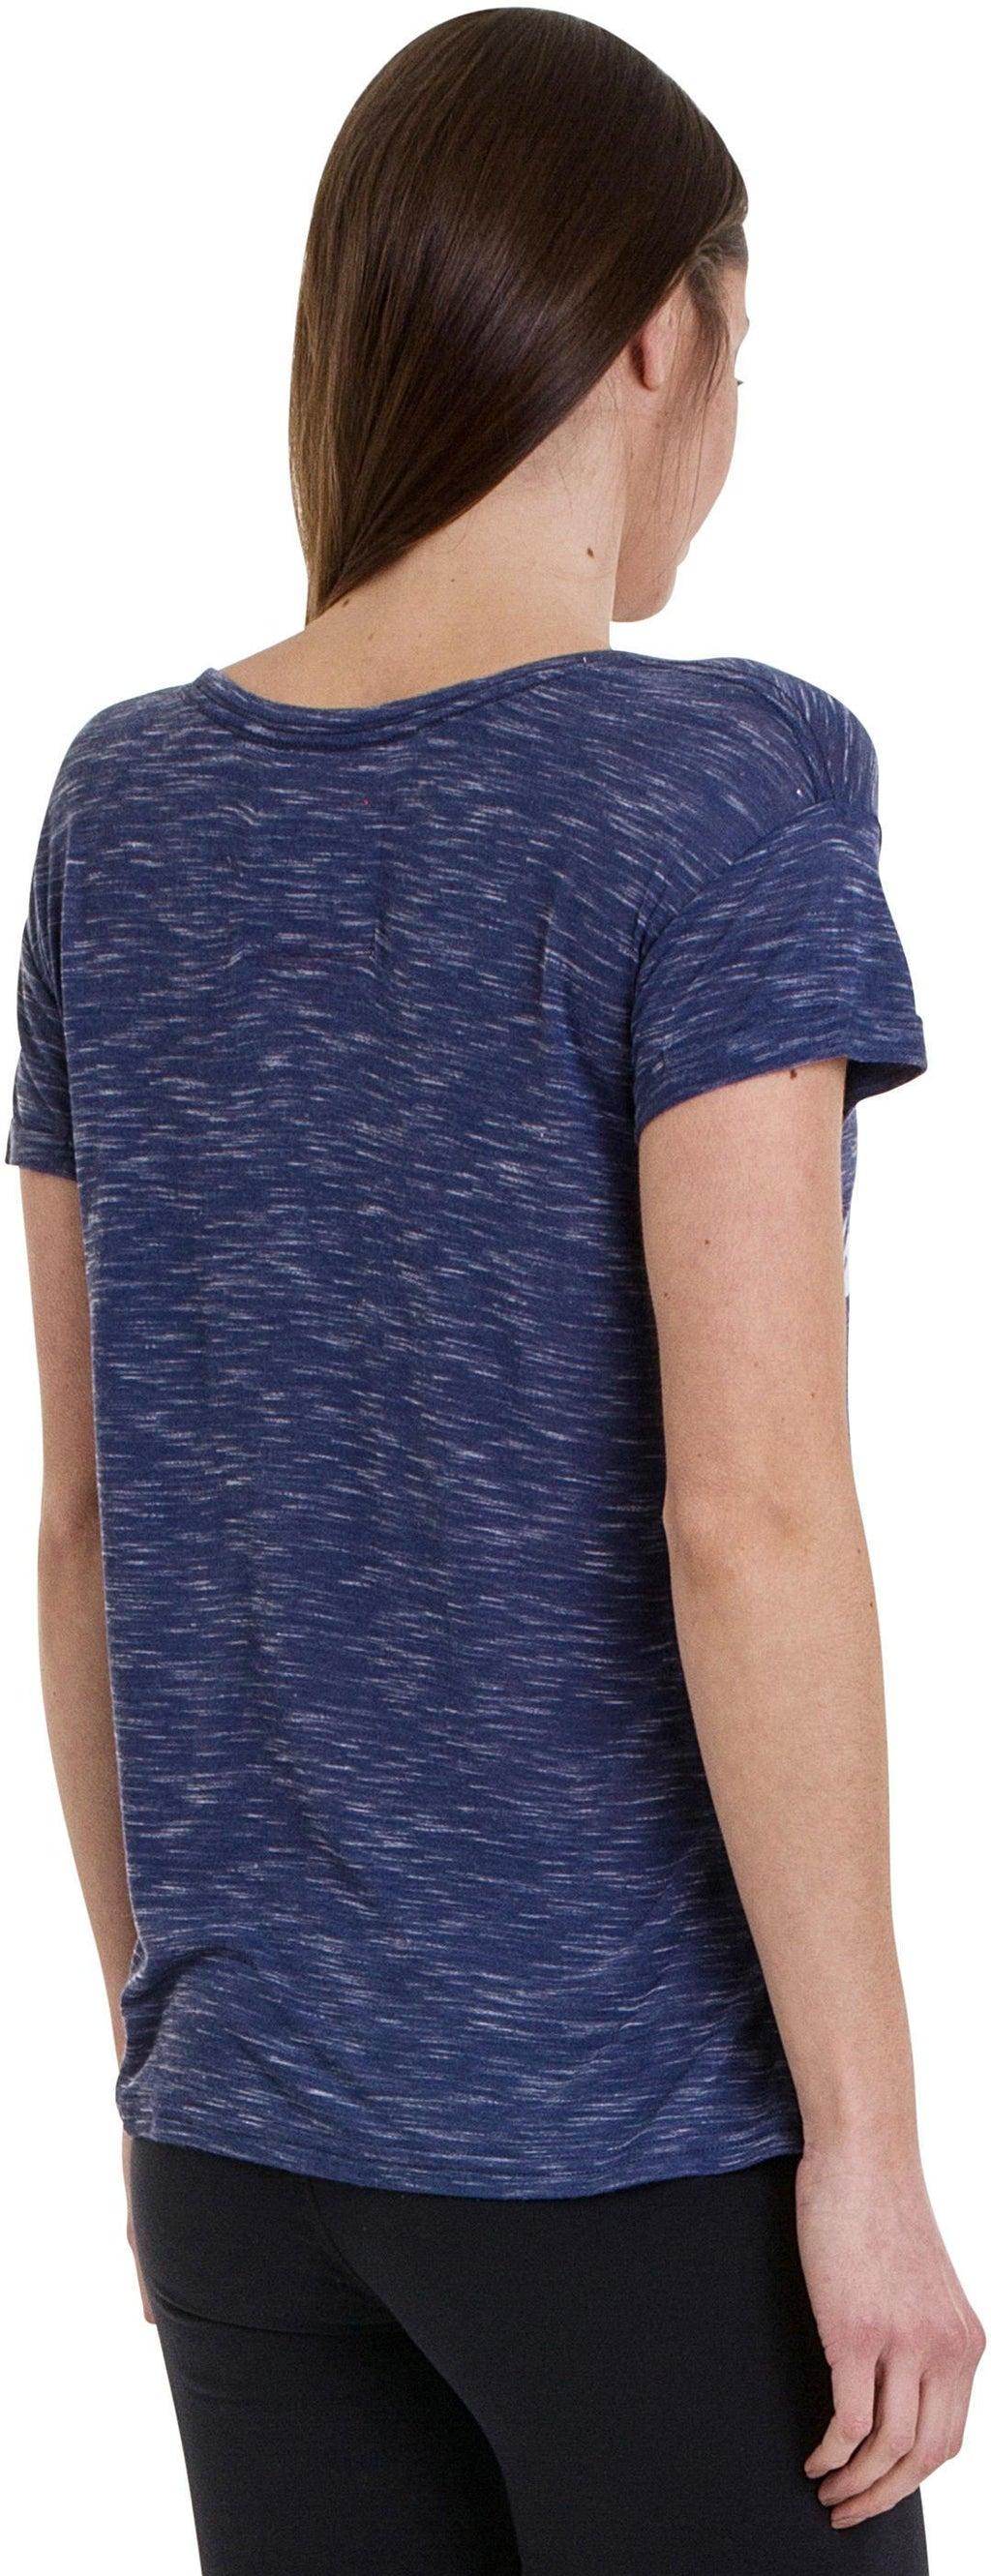 Superdry Women's Pacific Coast Slim Boyfriend T-Shirt Navy